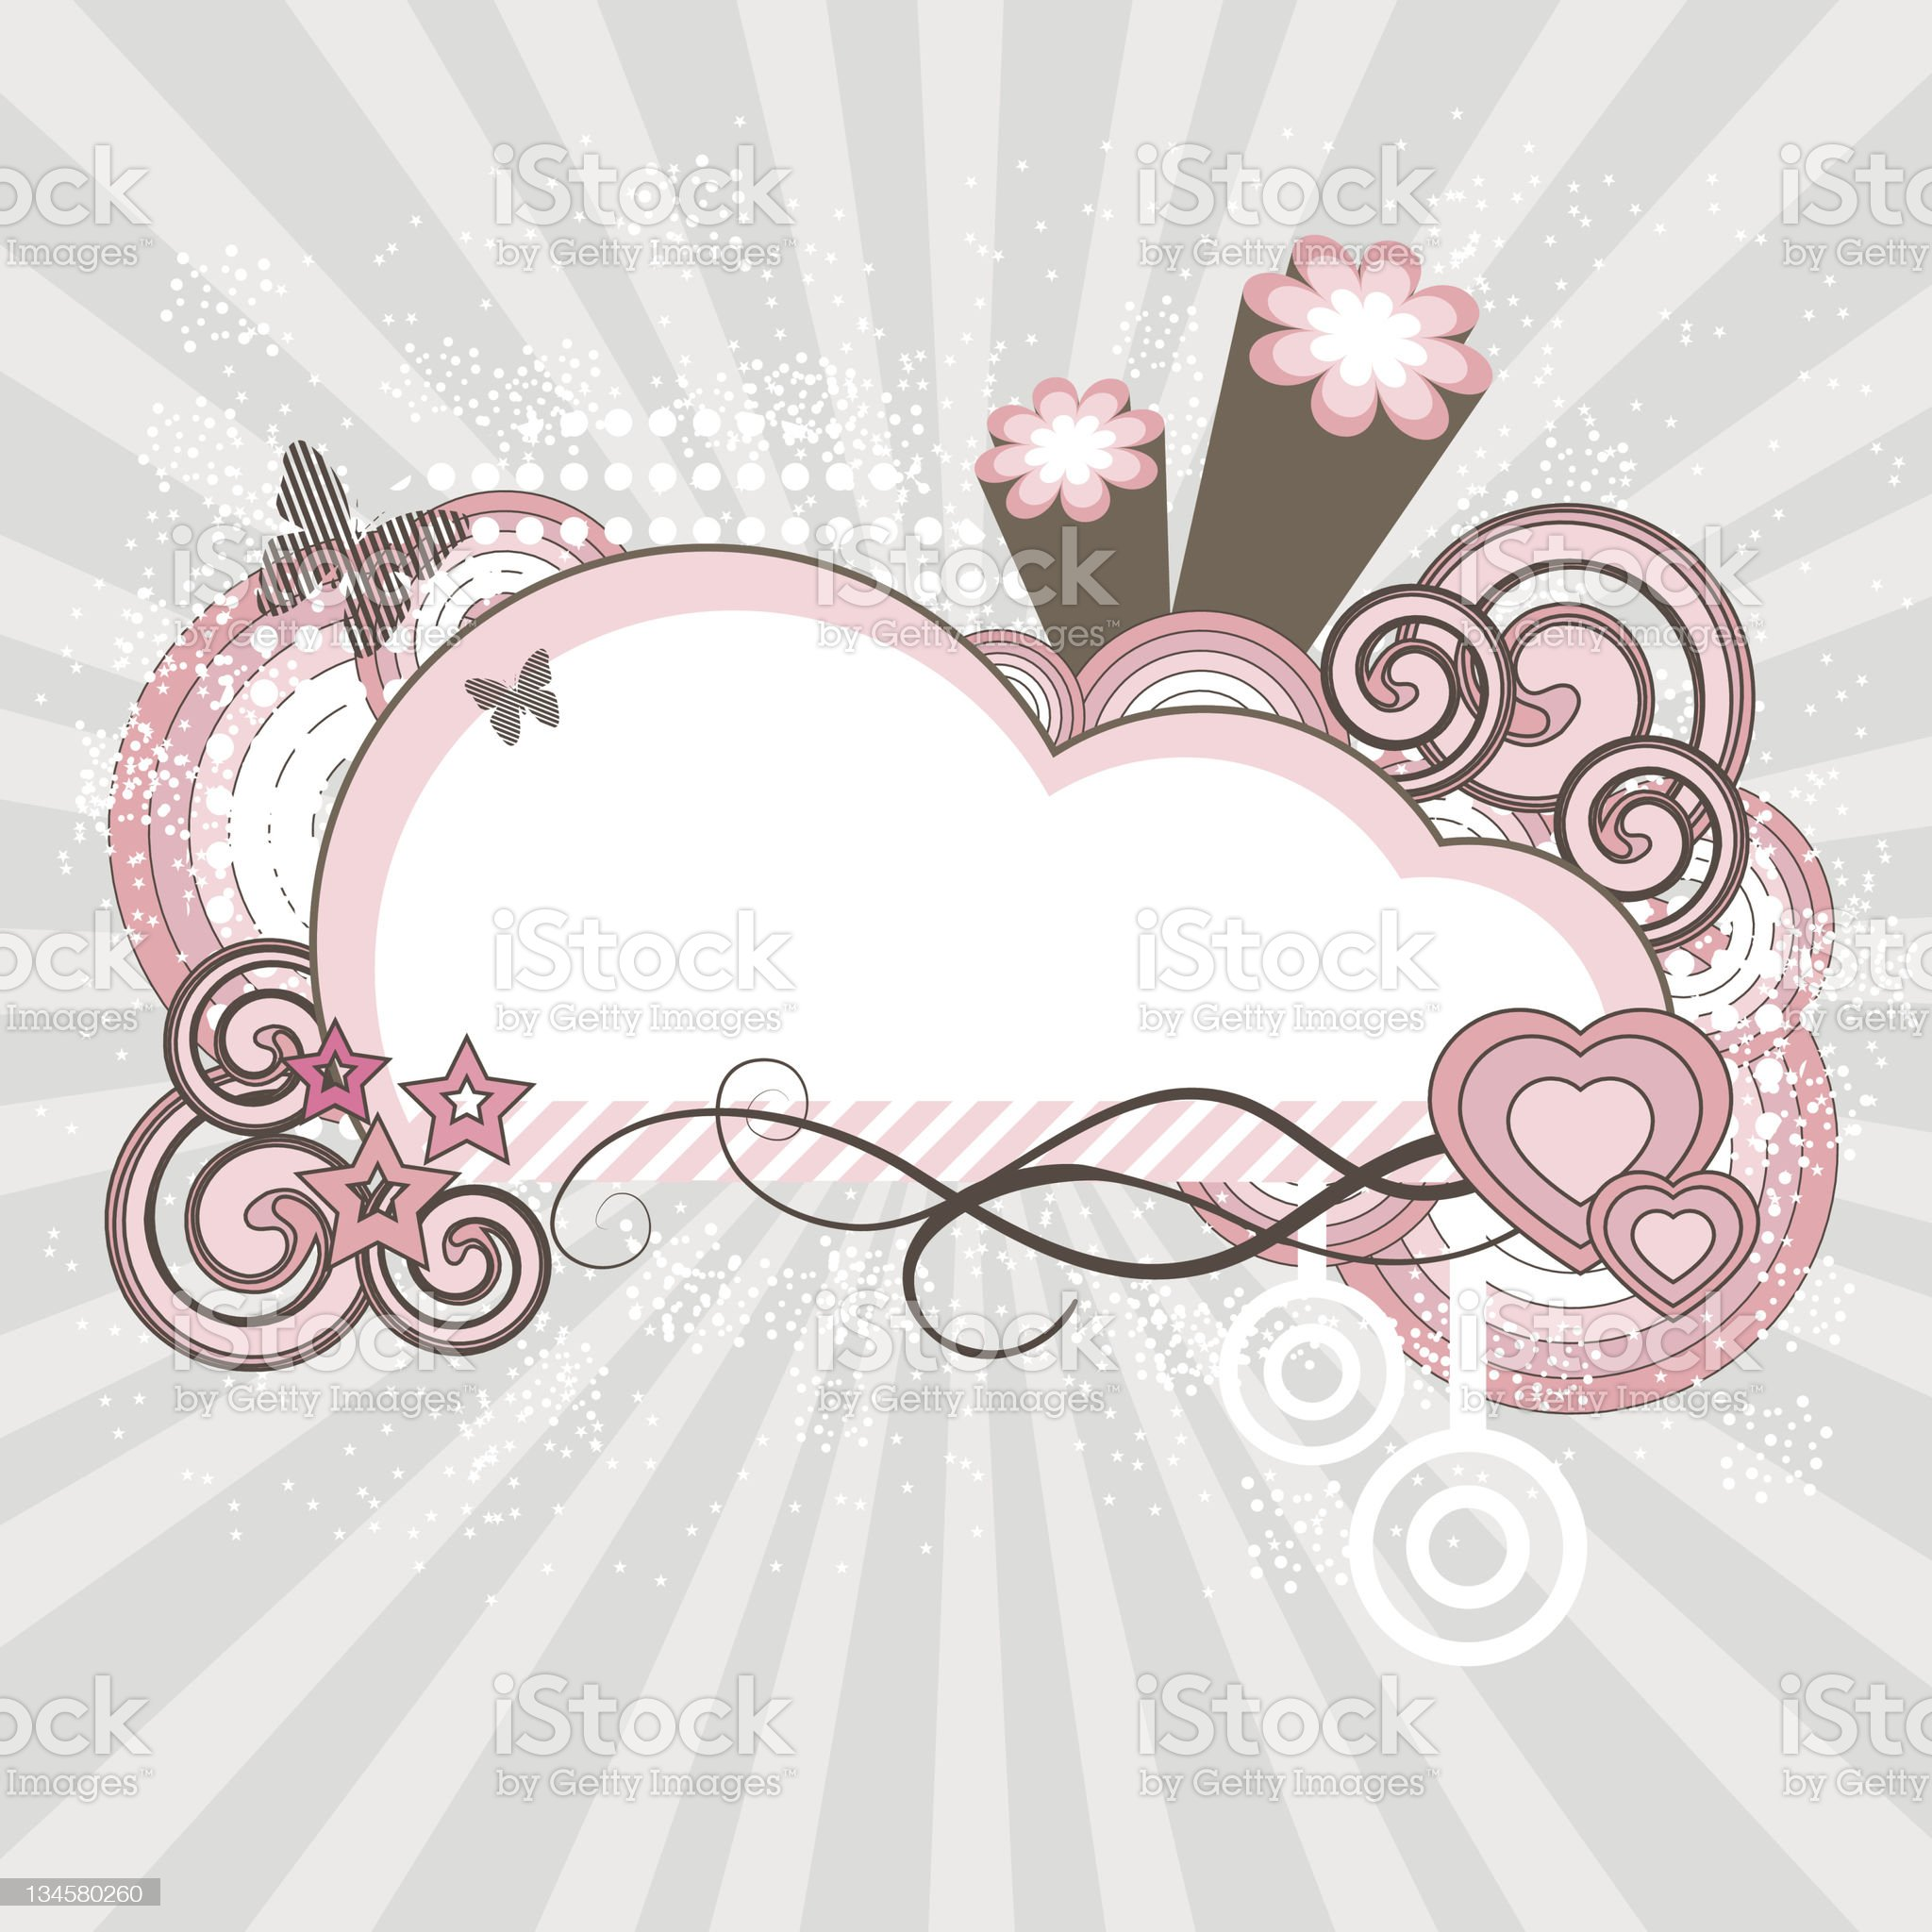 Romantic abstract frame royalty-free stock vector art